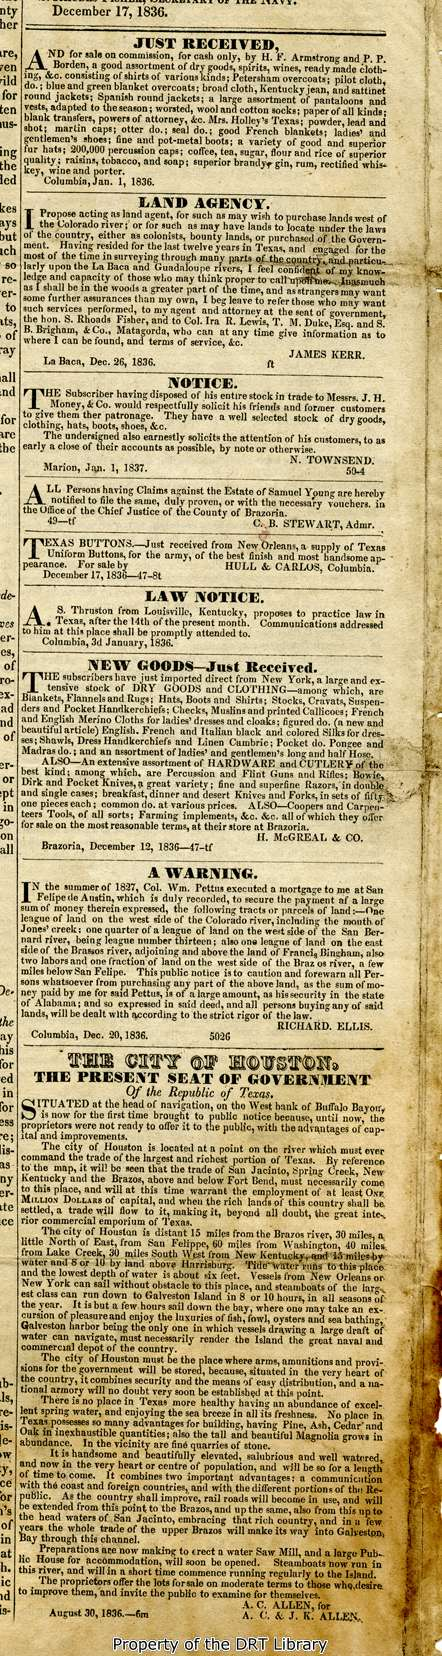 Detail of page four of the Telegraph and Texas Register from January 11, 1837.